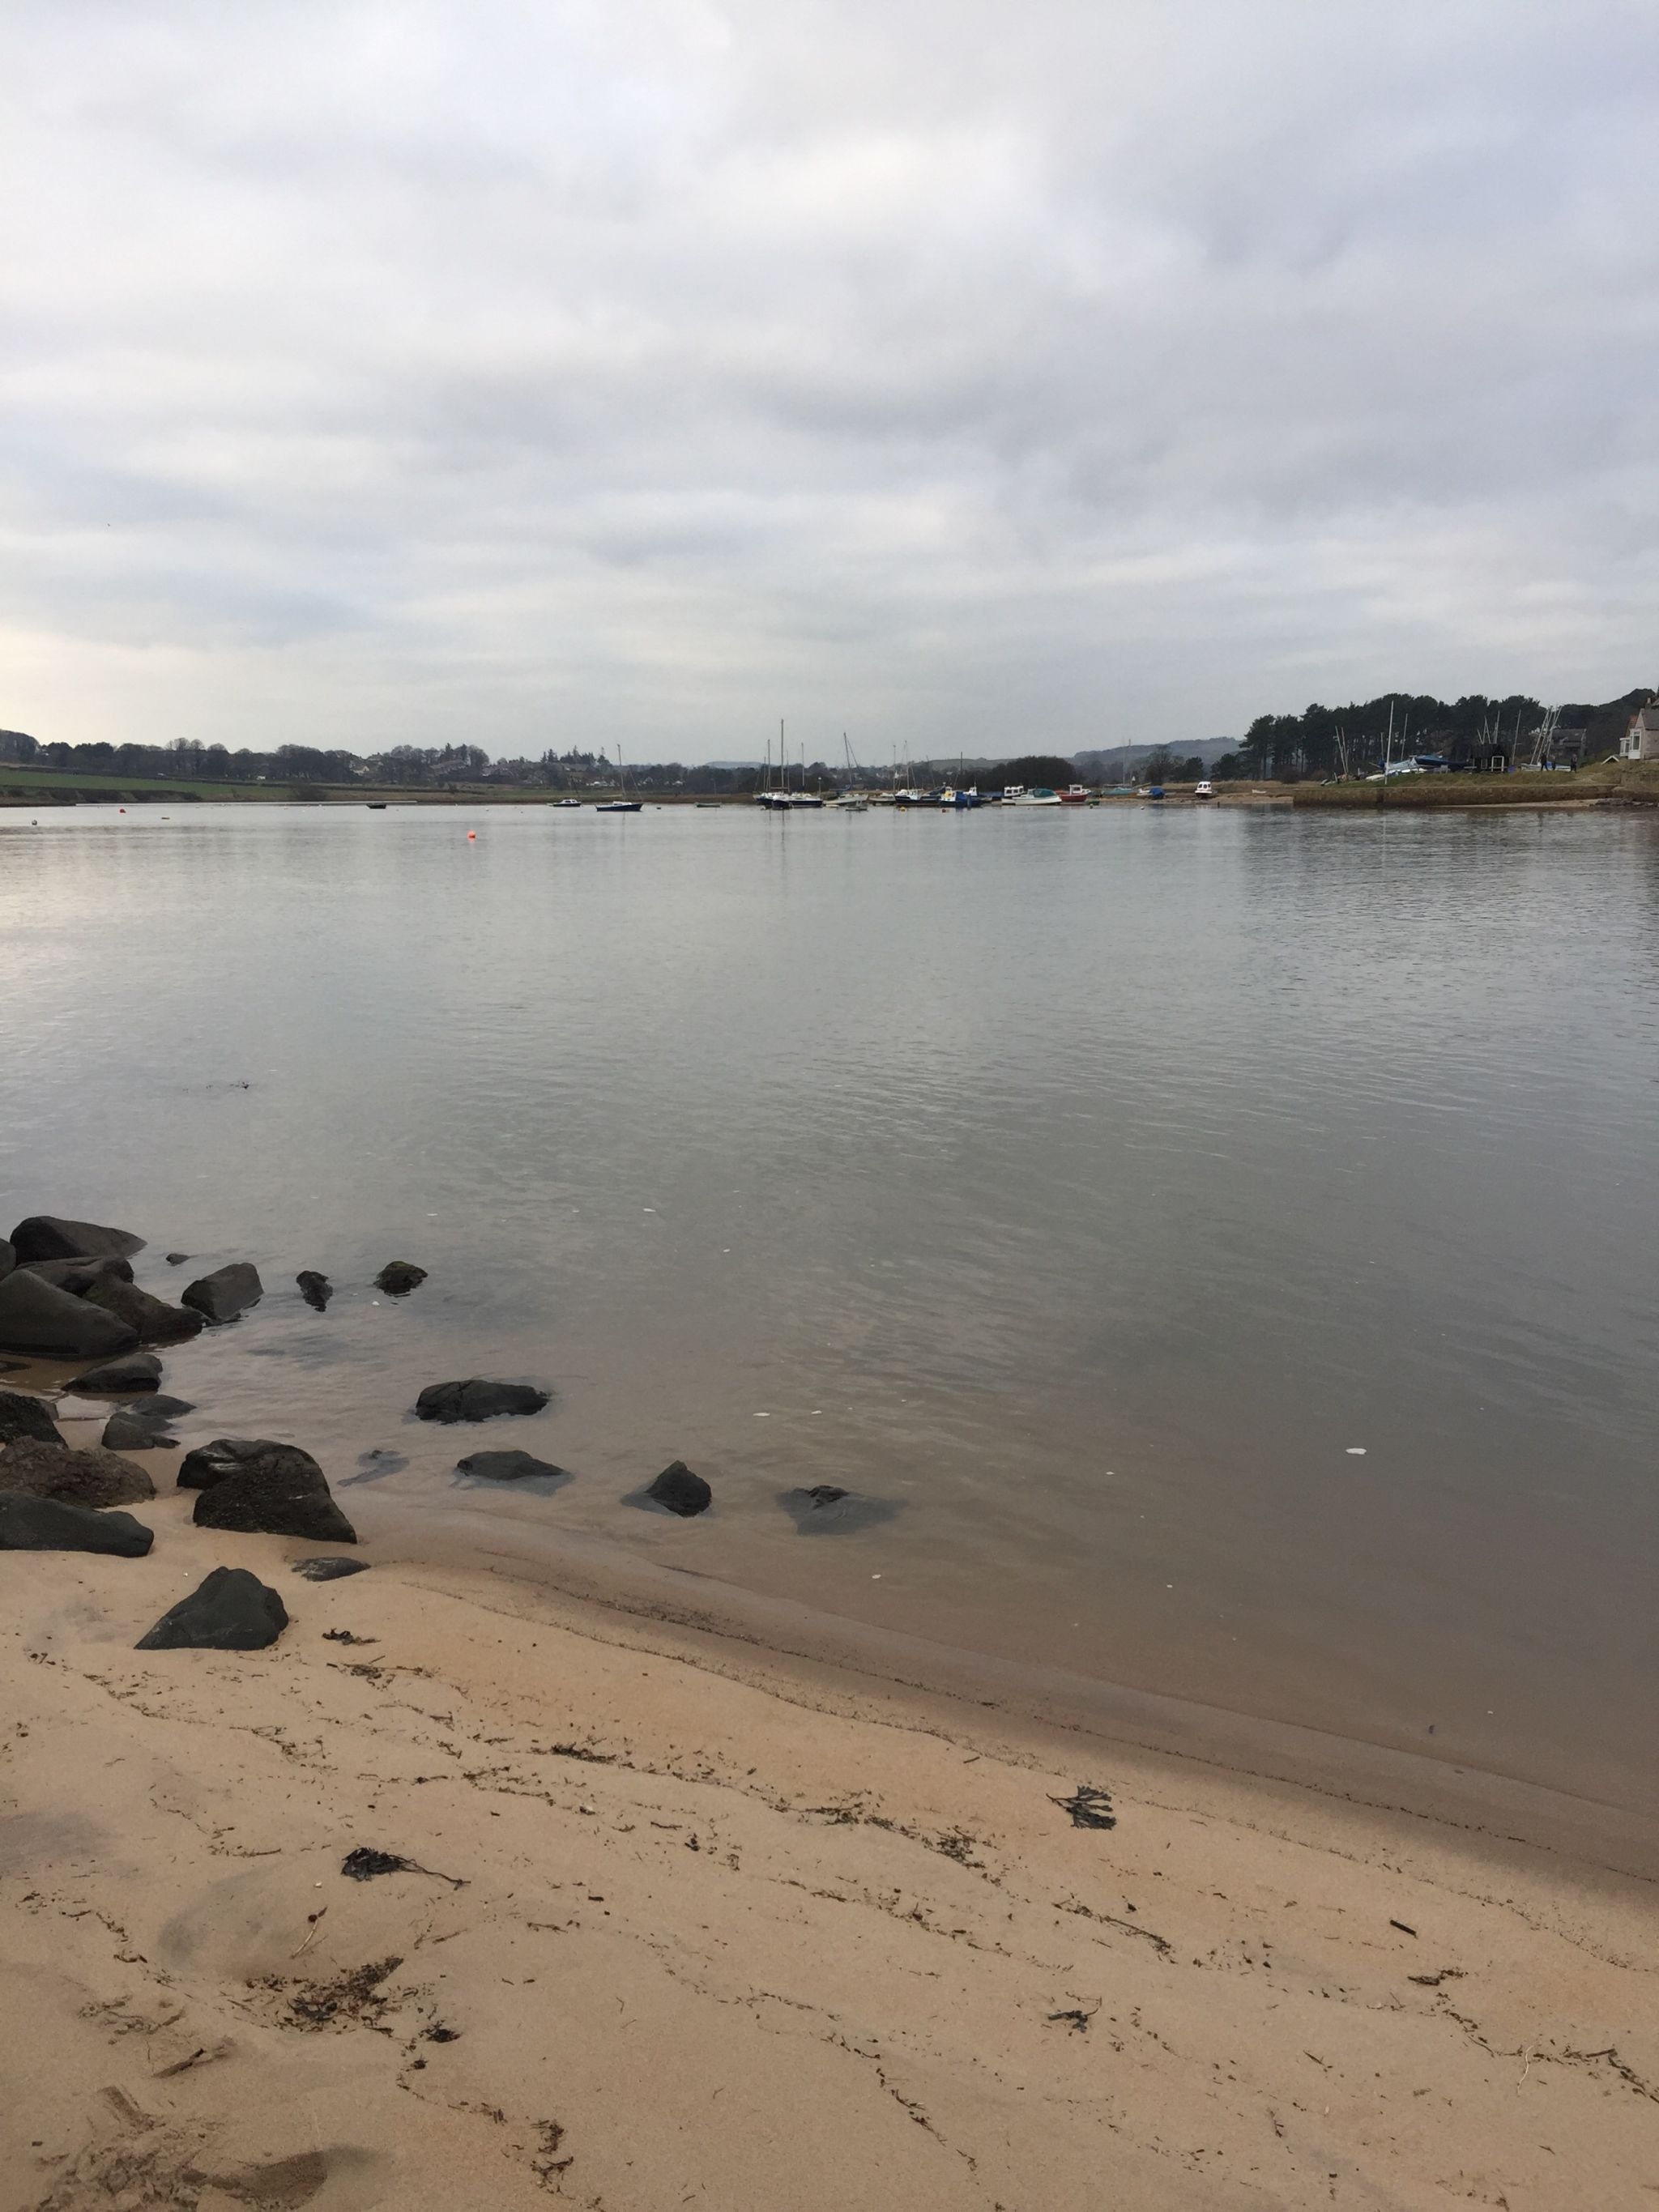 Hiking Amble to Alnmouth. The river Aln estuary